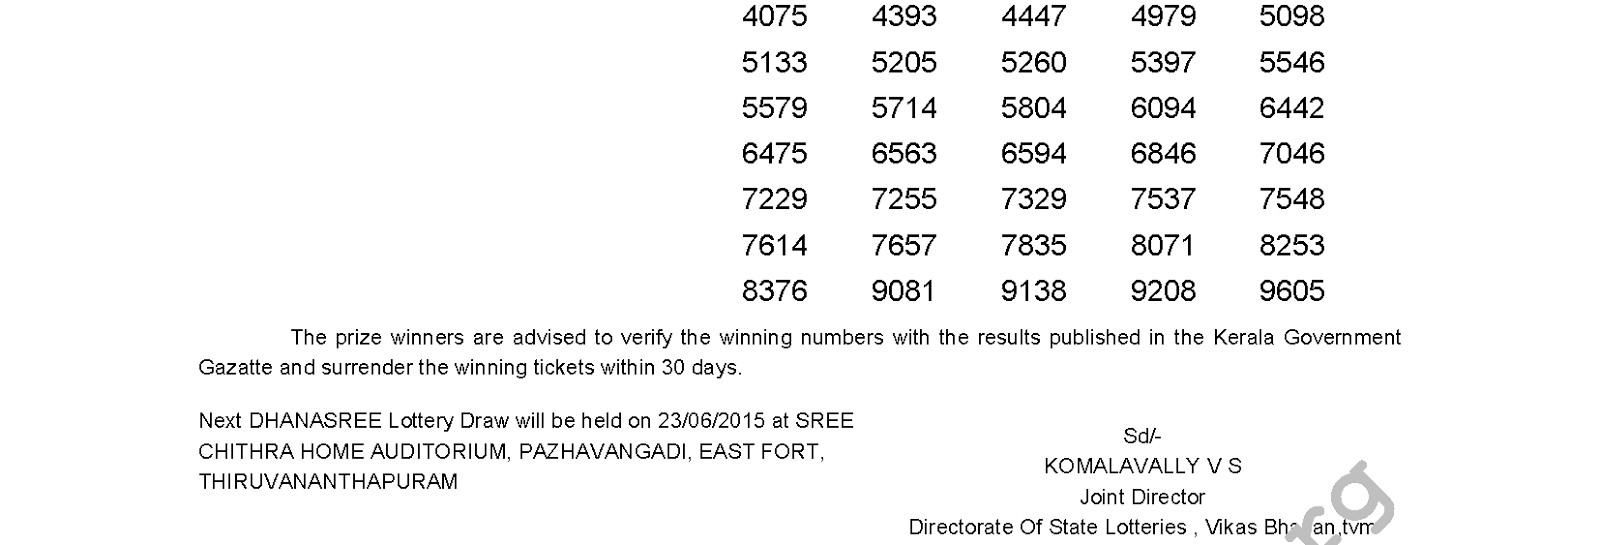 DHANASREE Lottery DS 190 Result 16-6-2015